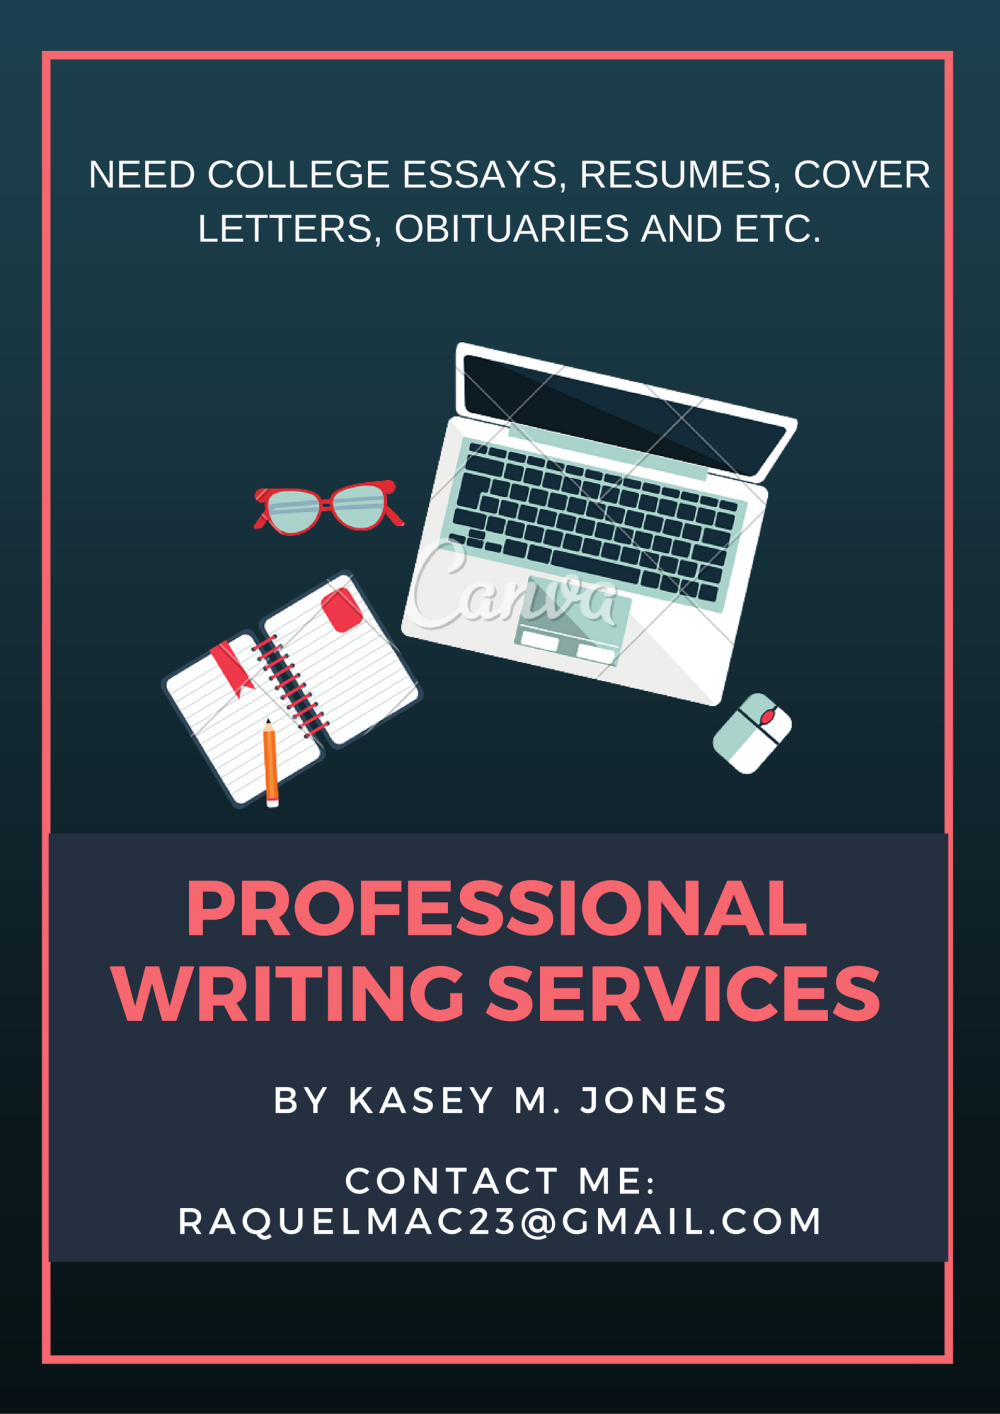 Professional writing service